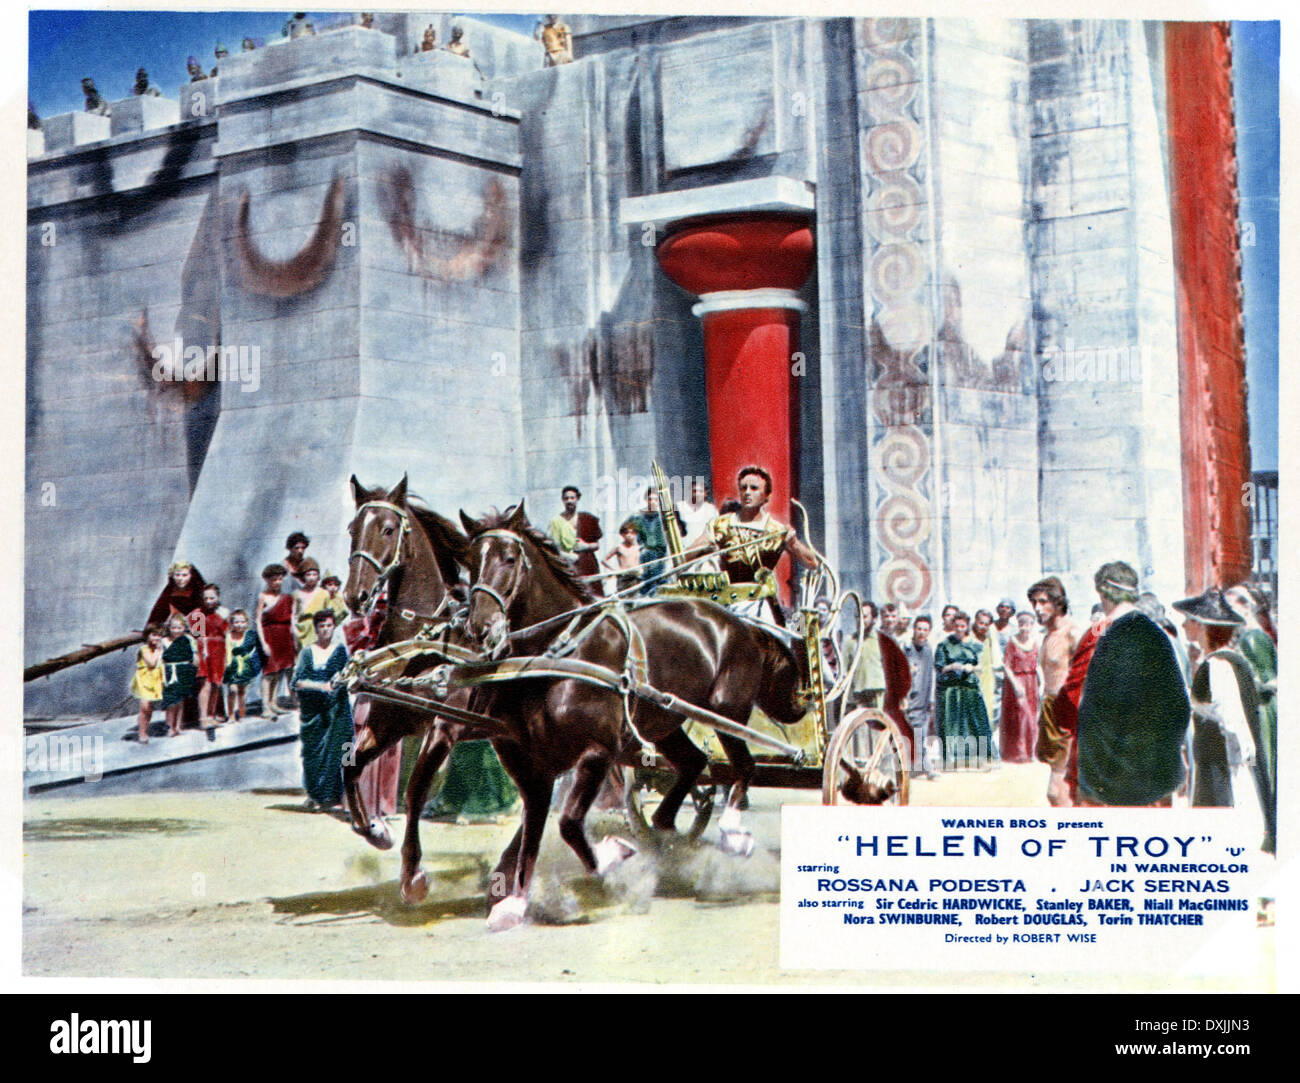 HELEN OF TROY (US/IT 1956) - Stock Image